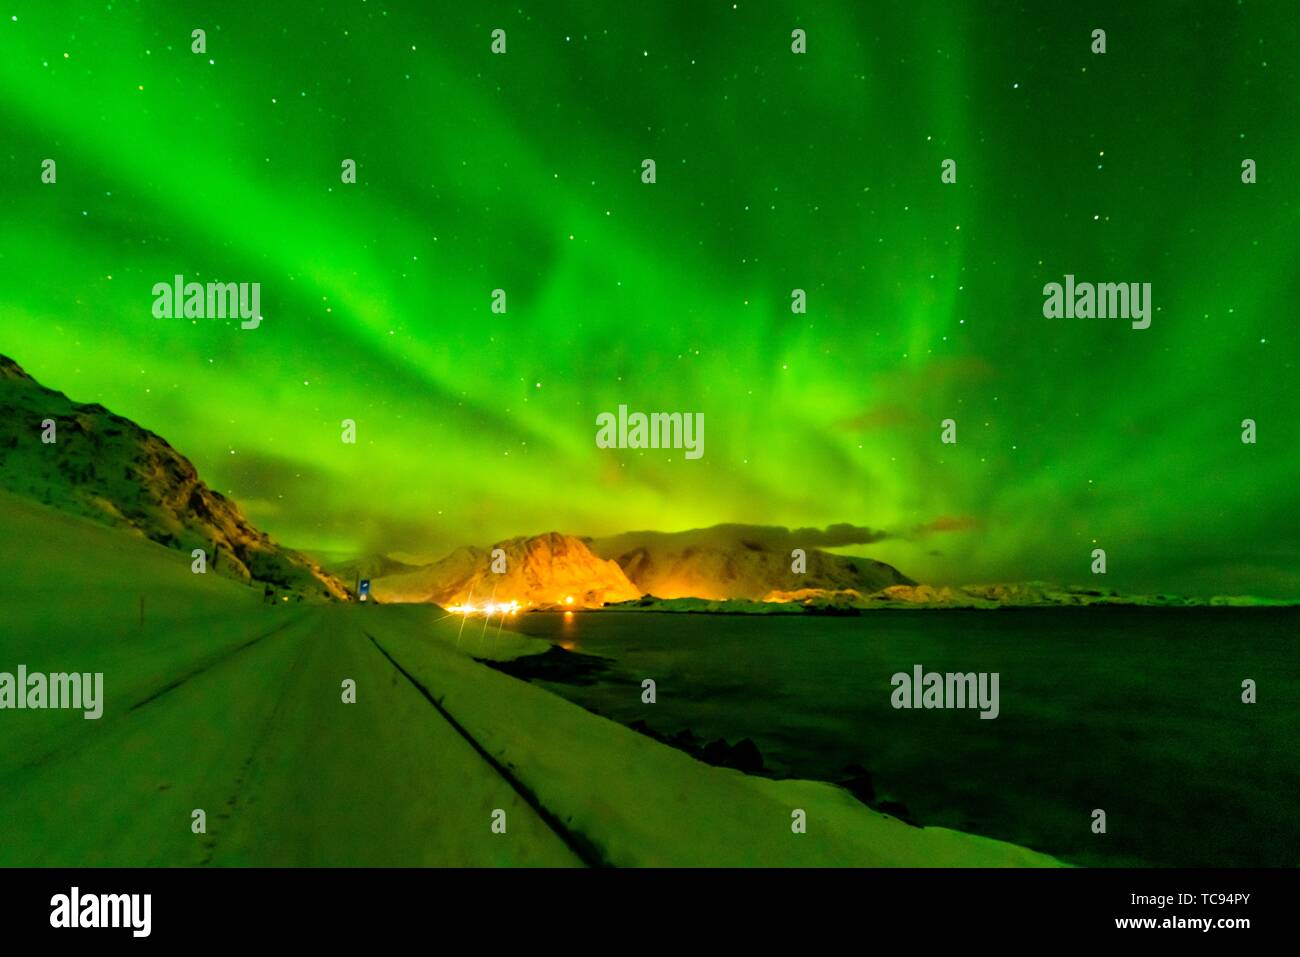 Northern Lights (Aurora Borealis) seen from along the E10 near Reine, Moskenoesoya Island, Lofoten Islands, Arctic, Northern Norway. - Stock Image